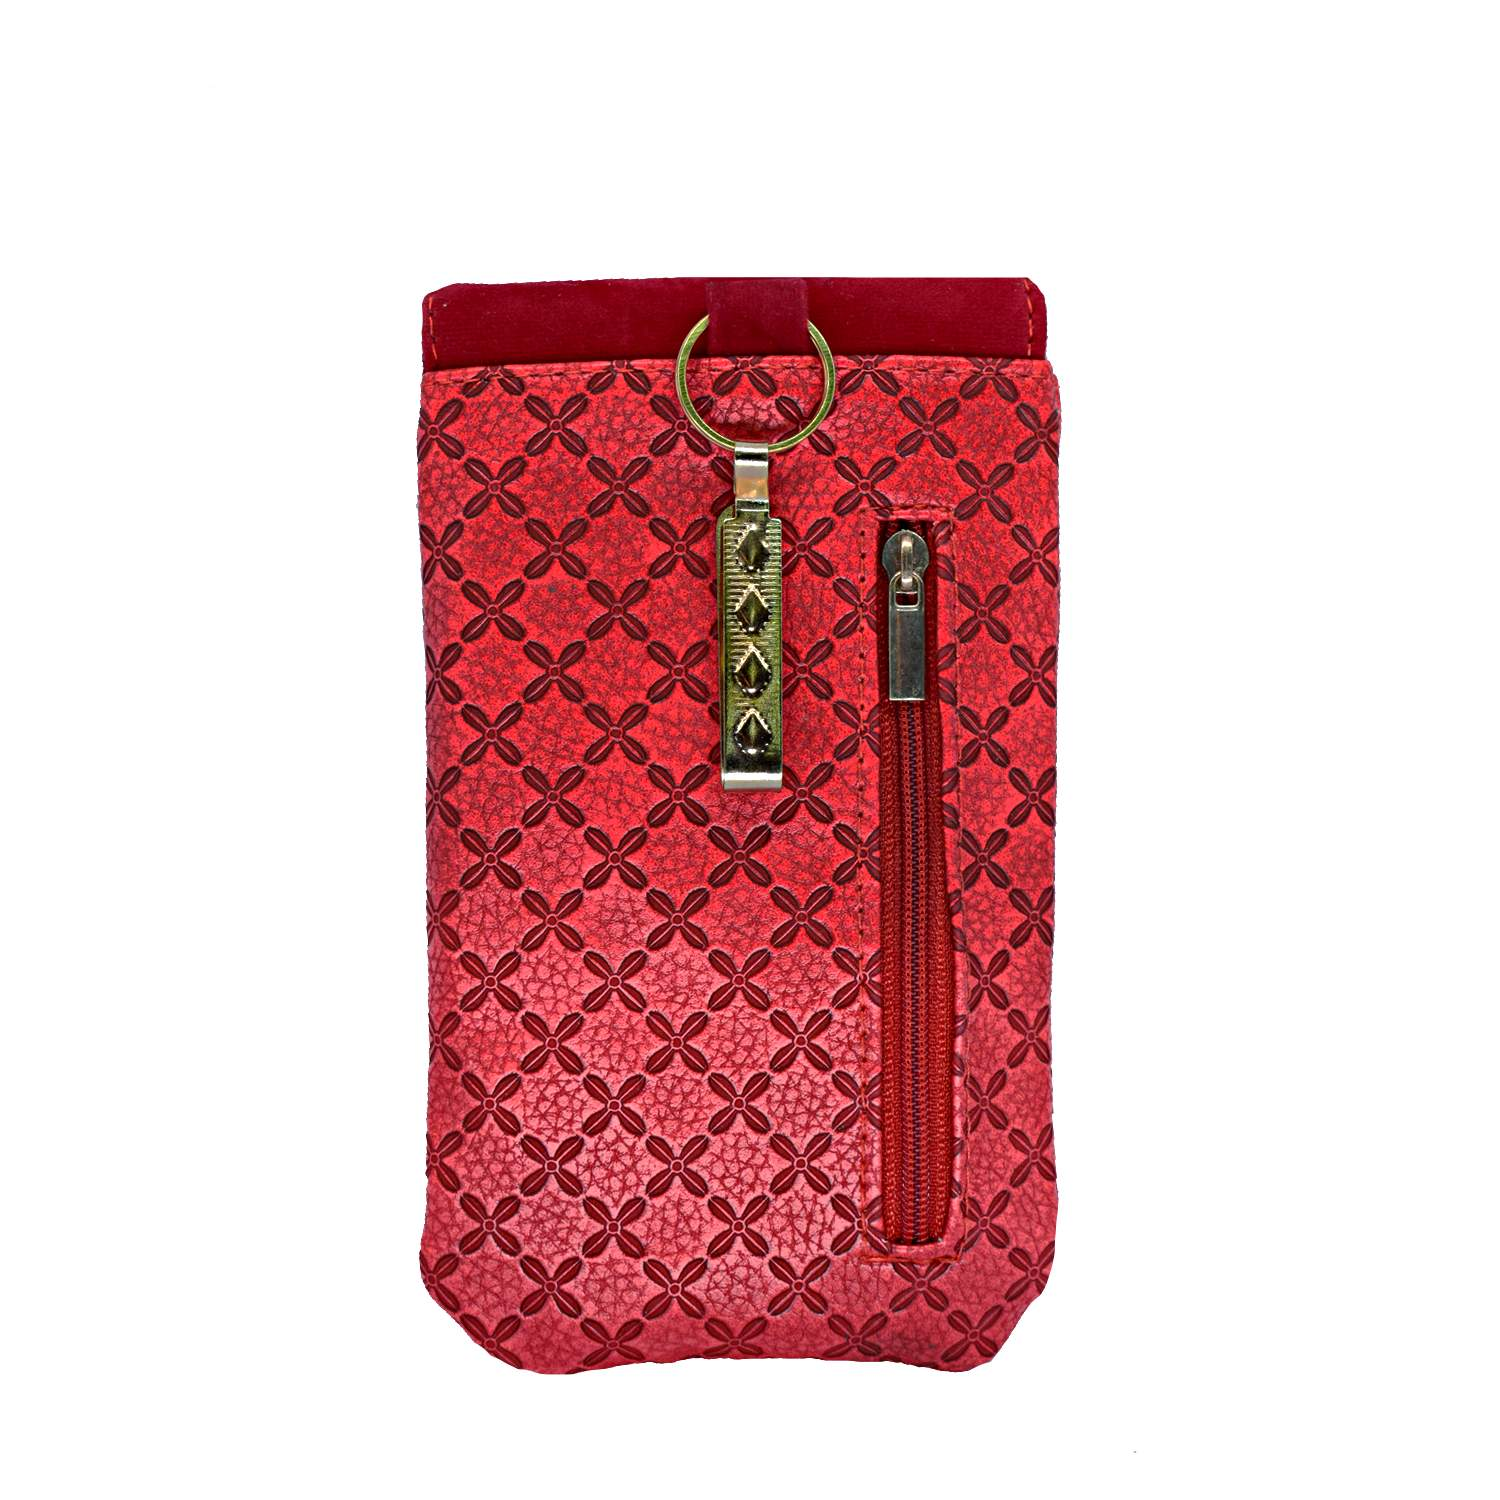 Ethnic Leather Saree Clutch Mobile Pouch Waist Clip Pouch (Red) - Bagaholics Gift